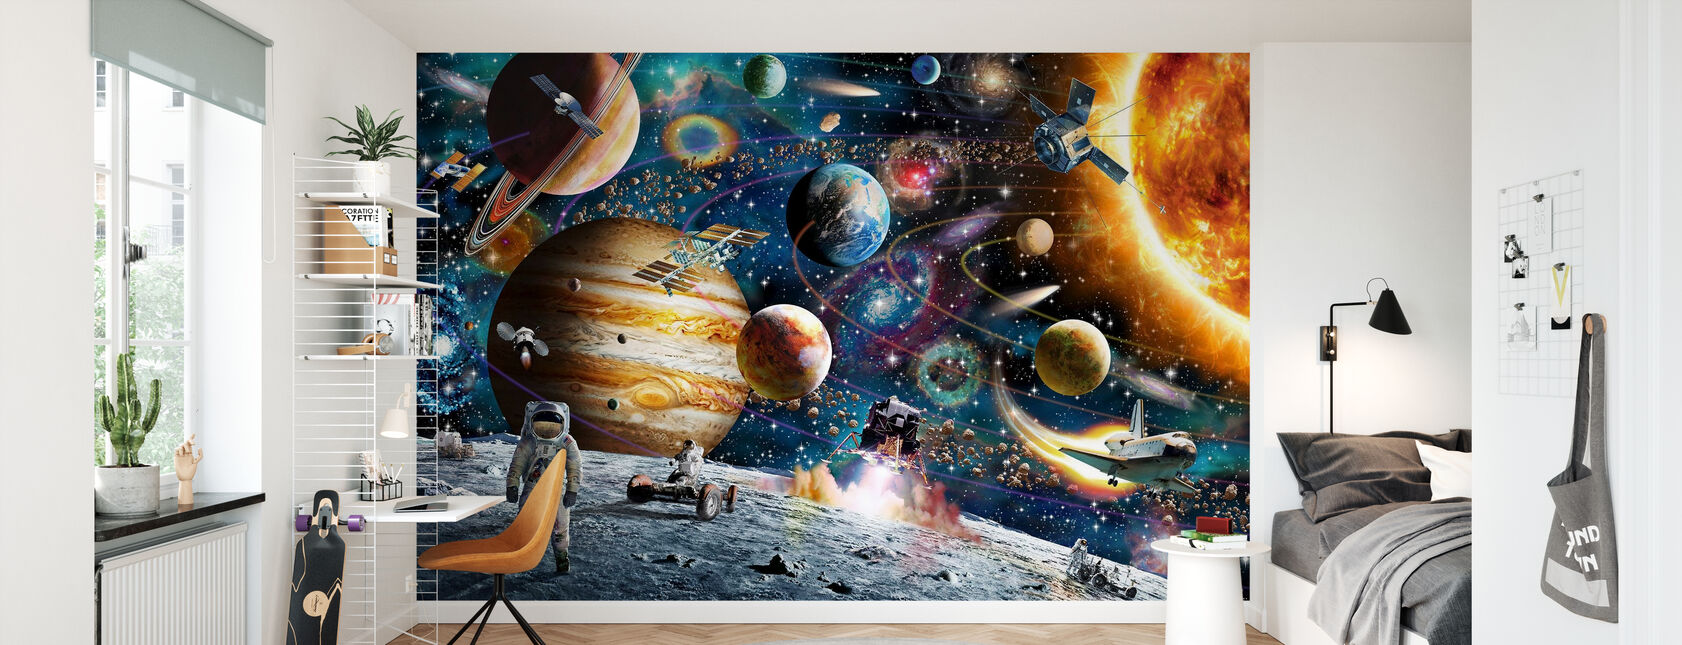 Space Odyssey - Wallpaper - Kids Room